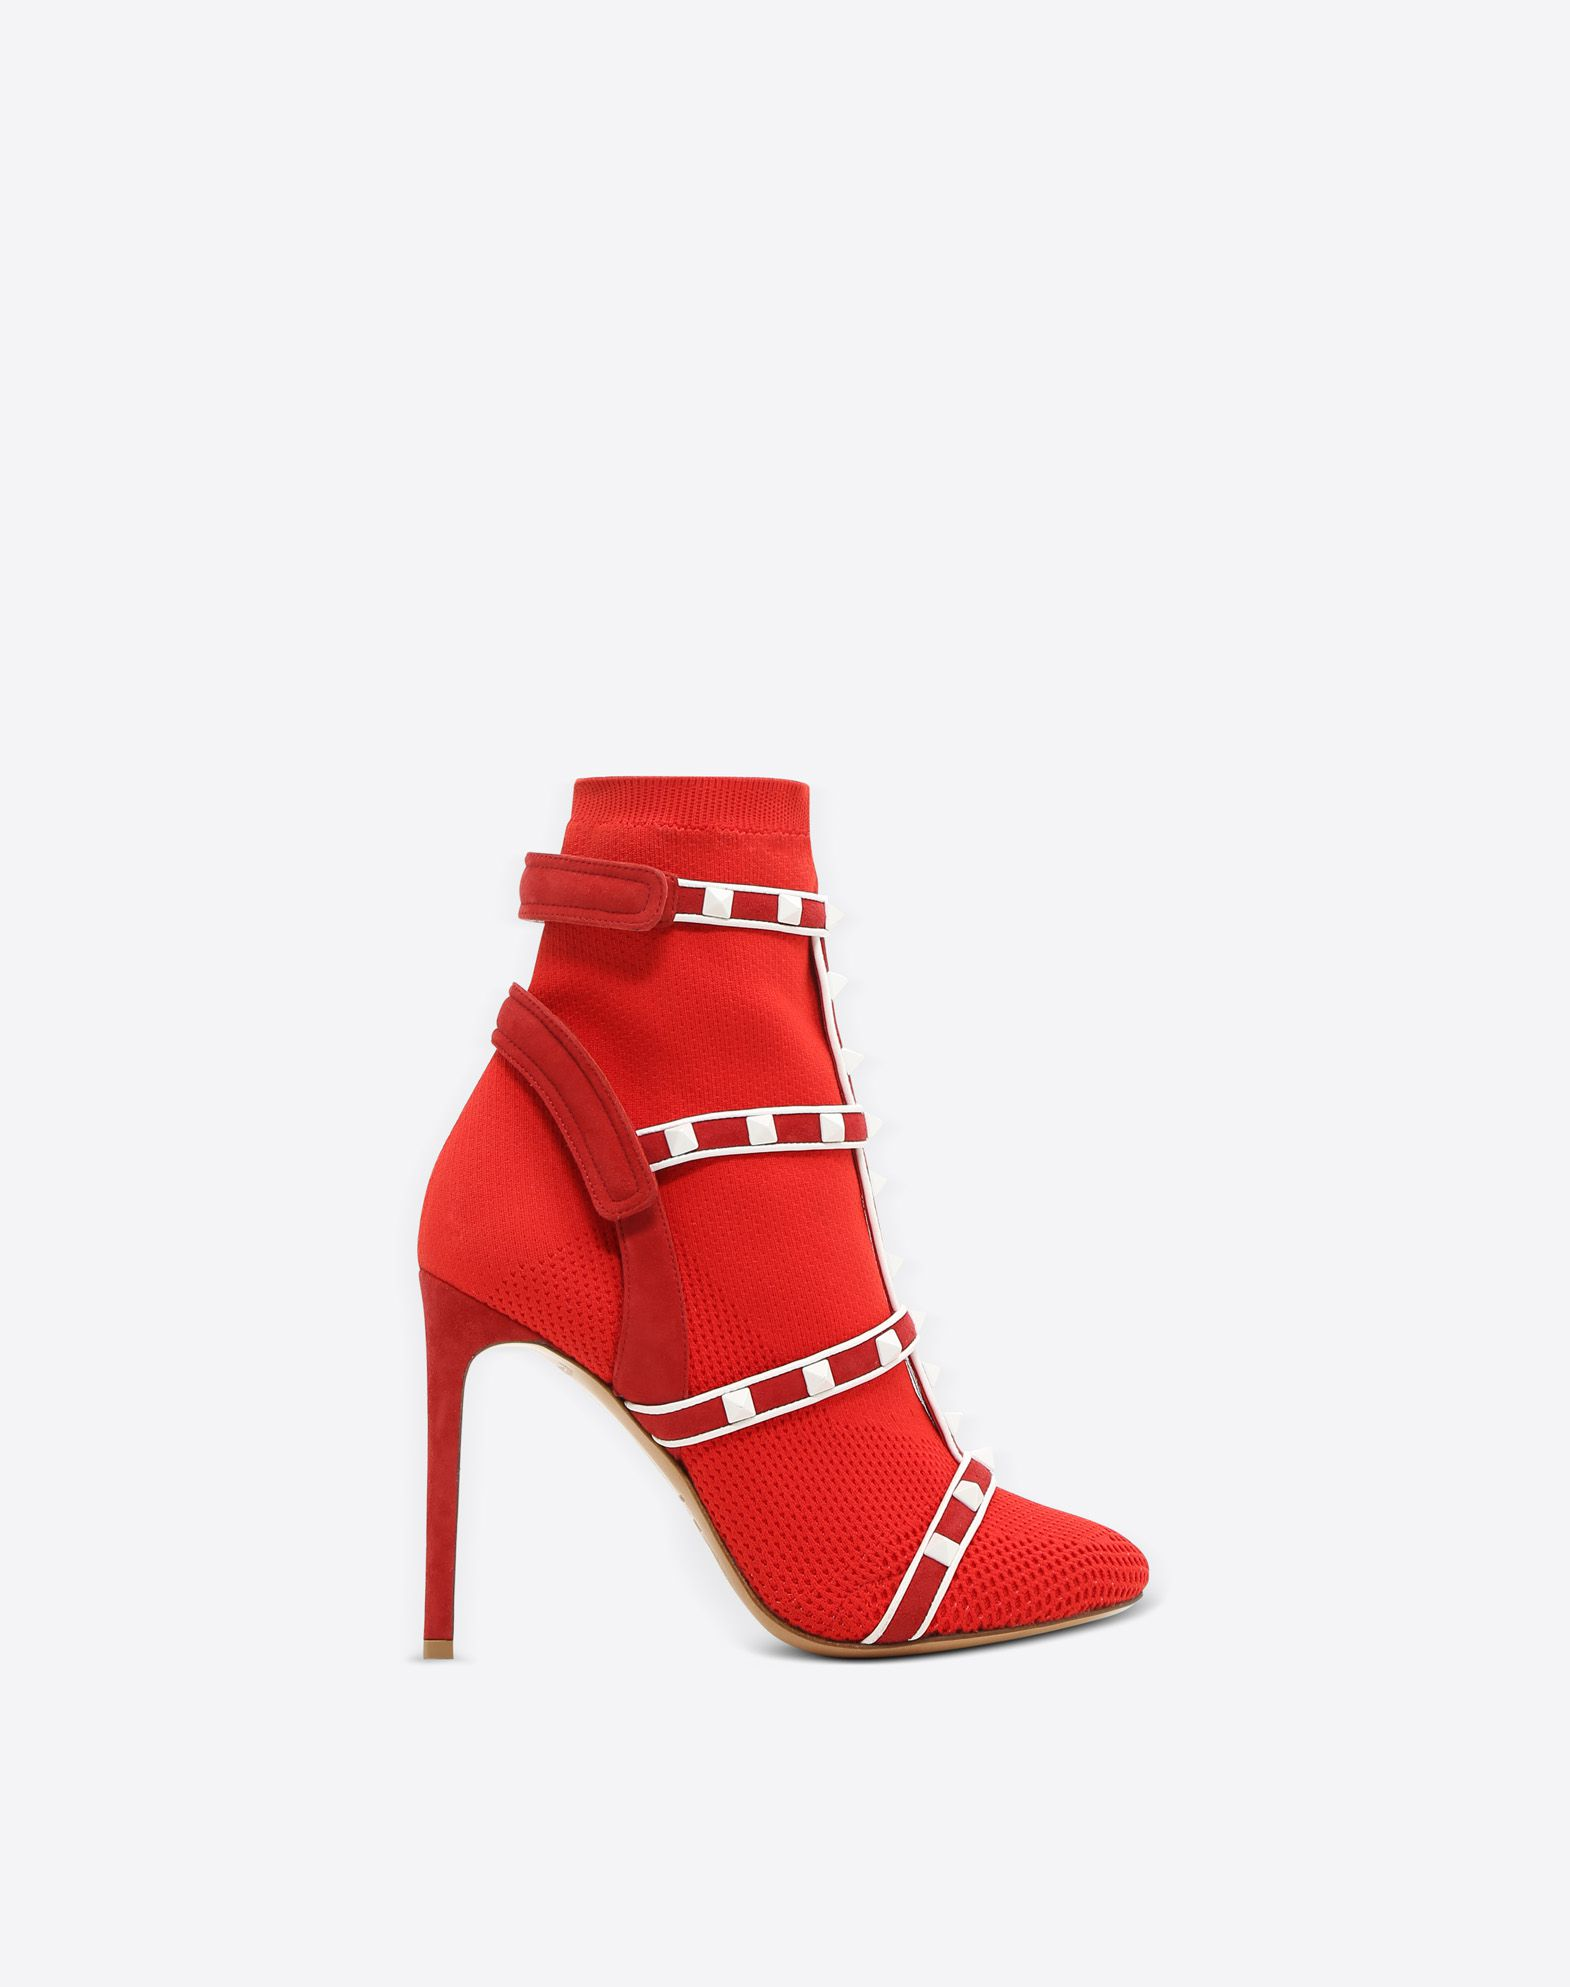 RED Valentino Leather Ankle Boots Gr. EU 40 UyIIRnZP9